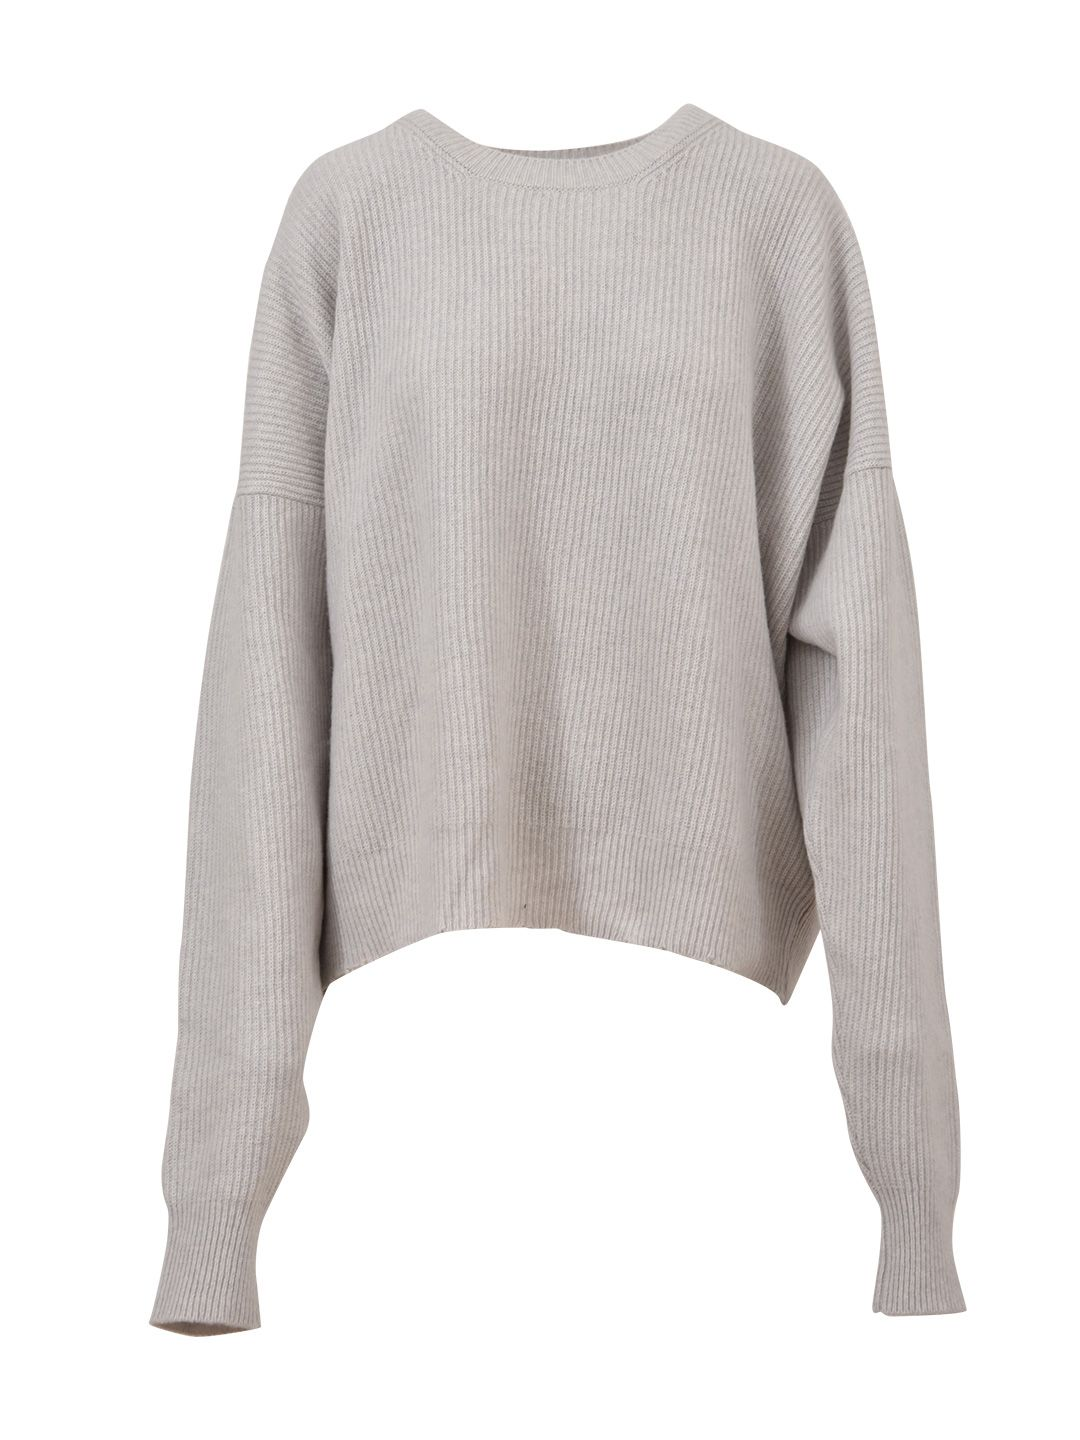 Ben Taverniti Unravel Project Ivory Oversized Sweater